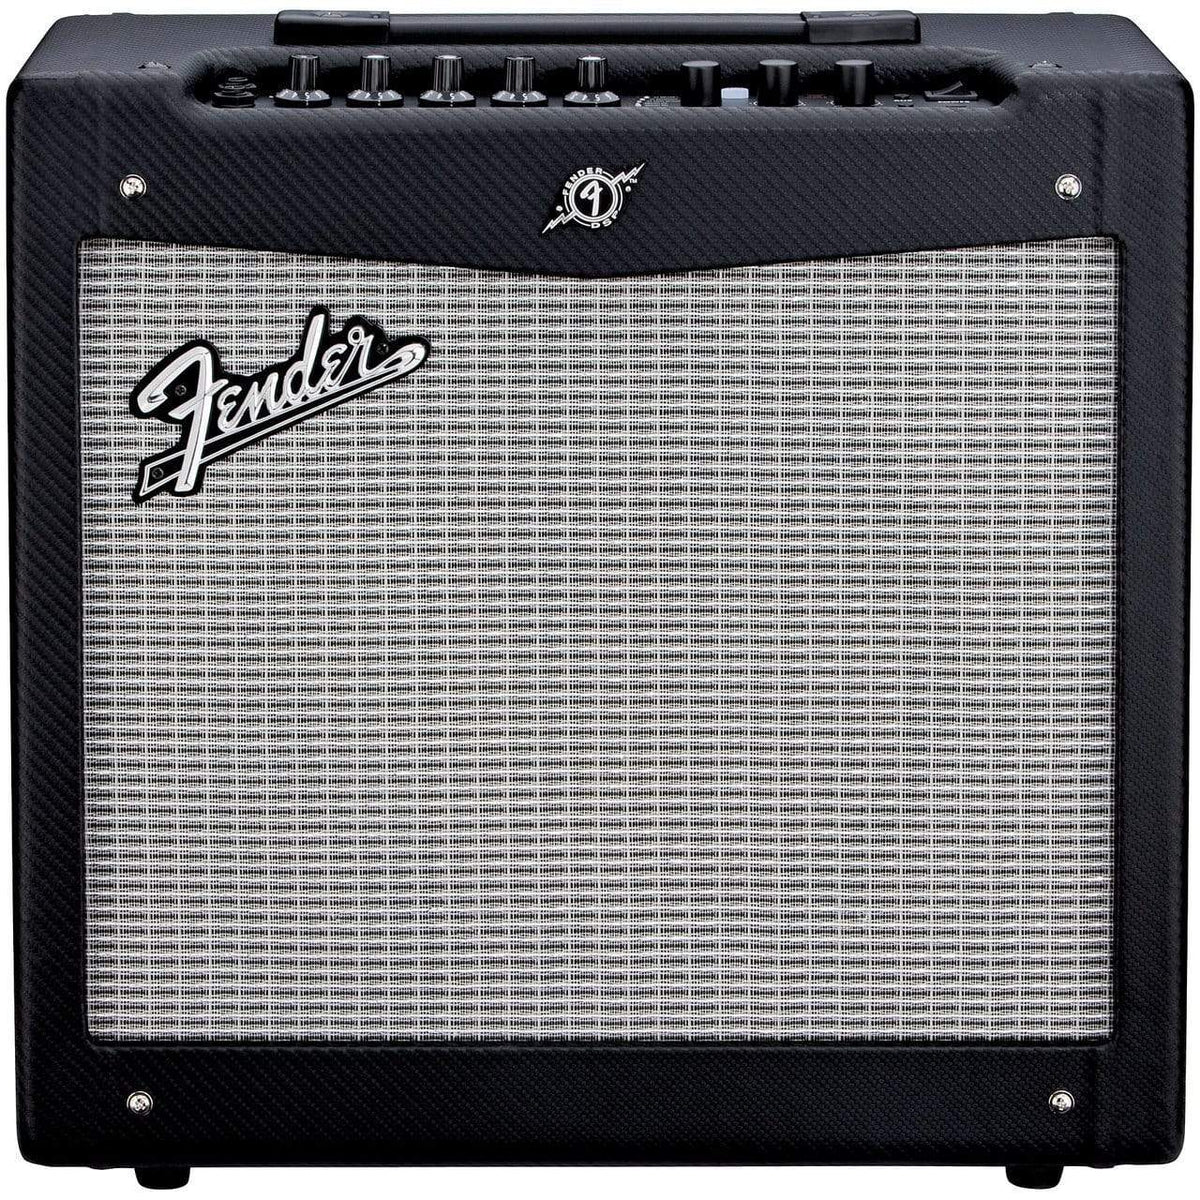 Fender Mustang 1 V2 Guitar Amplifier